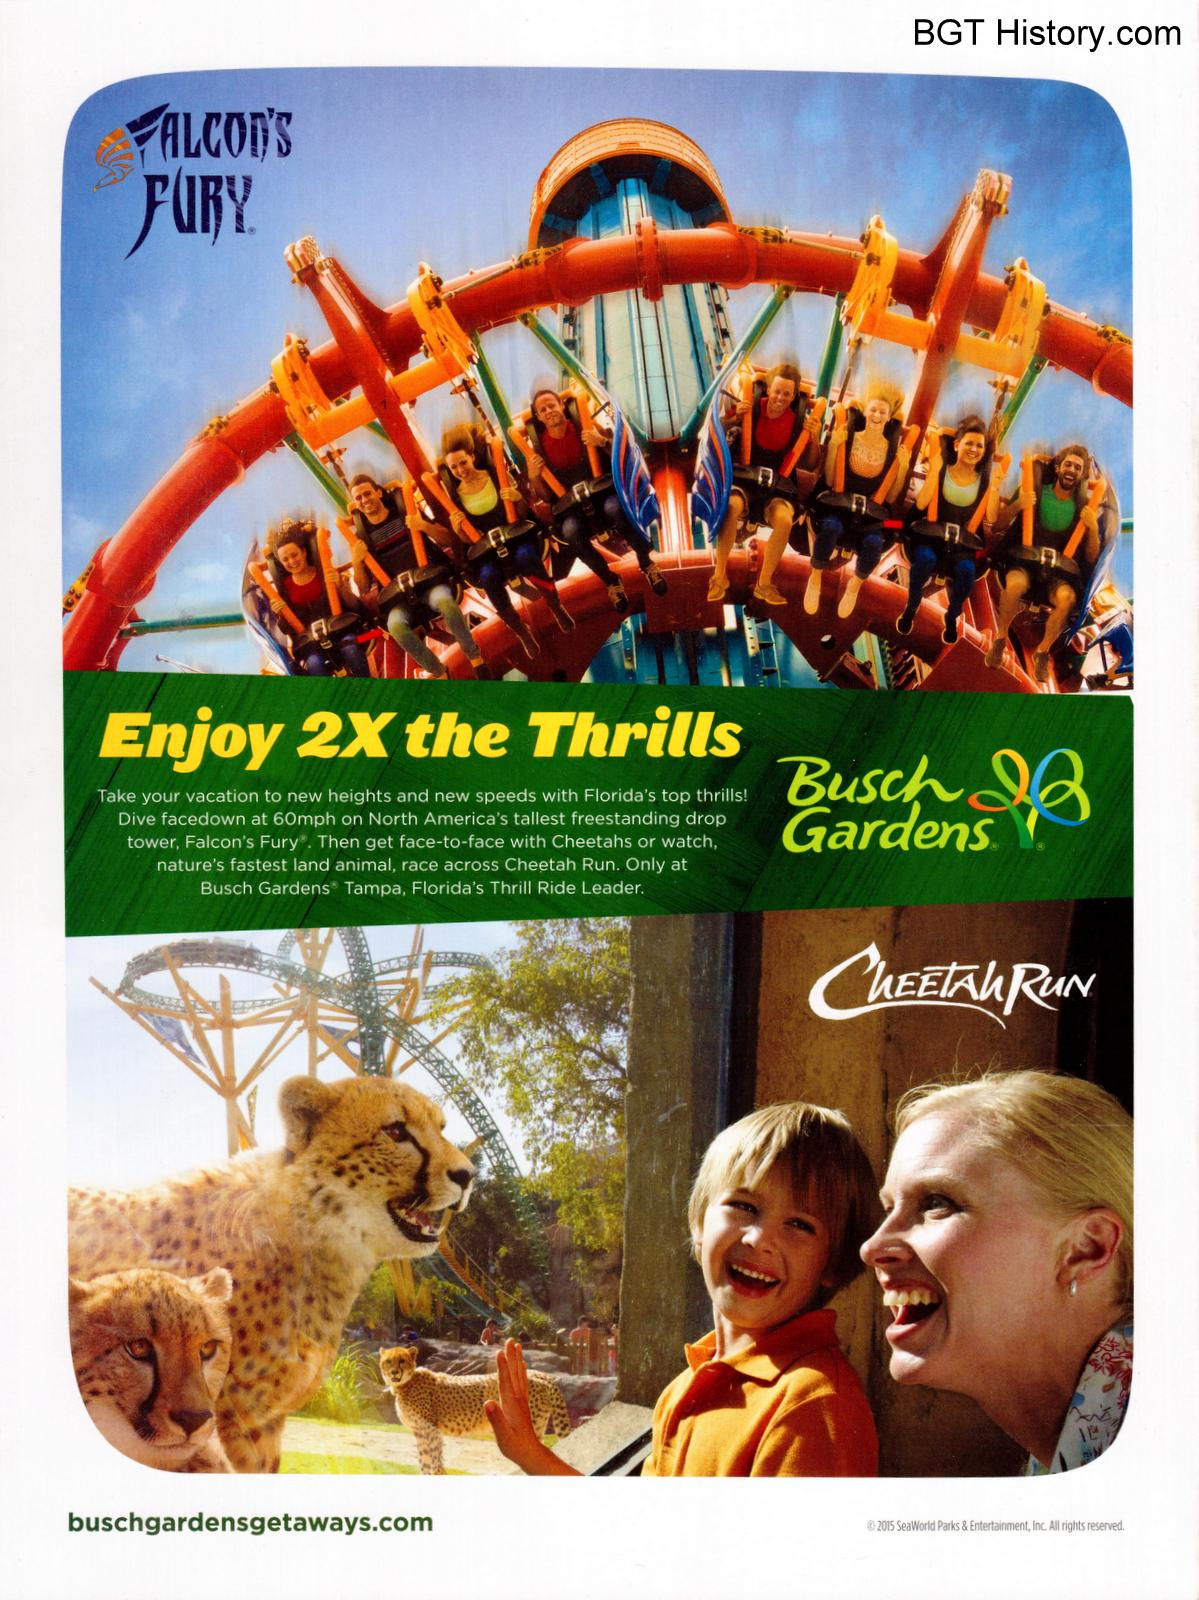 Advertisement 2016 Visit Tampa Bay Visitor Guide - Busch Gardens Bring A Friend For Free 2016